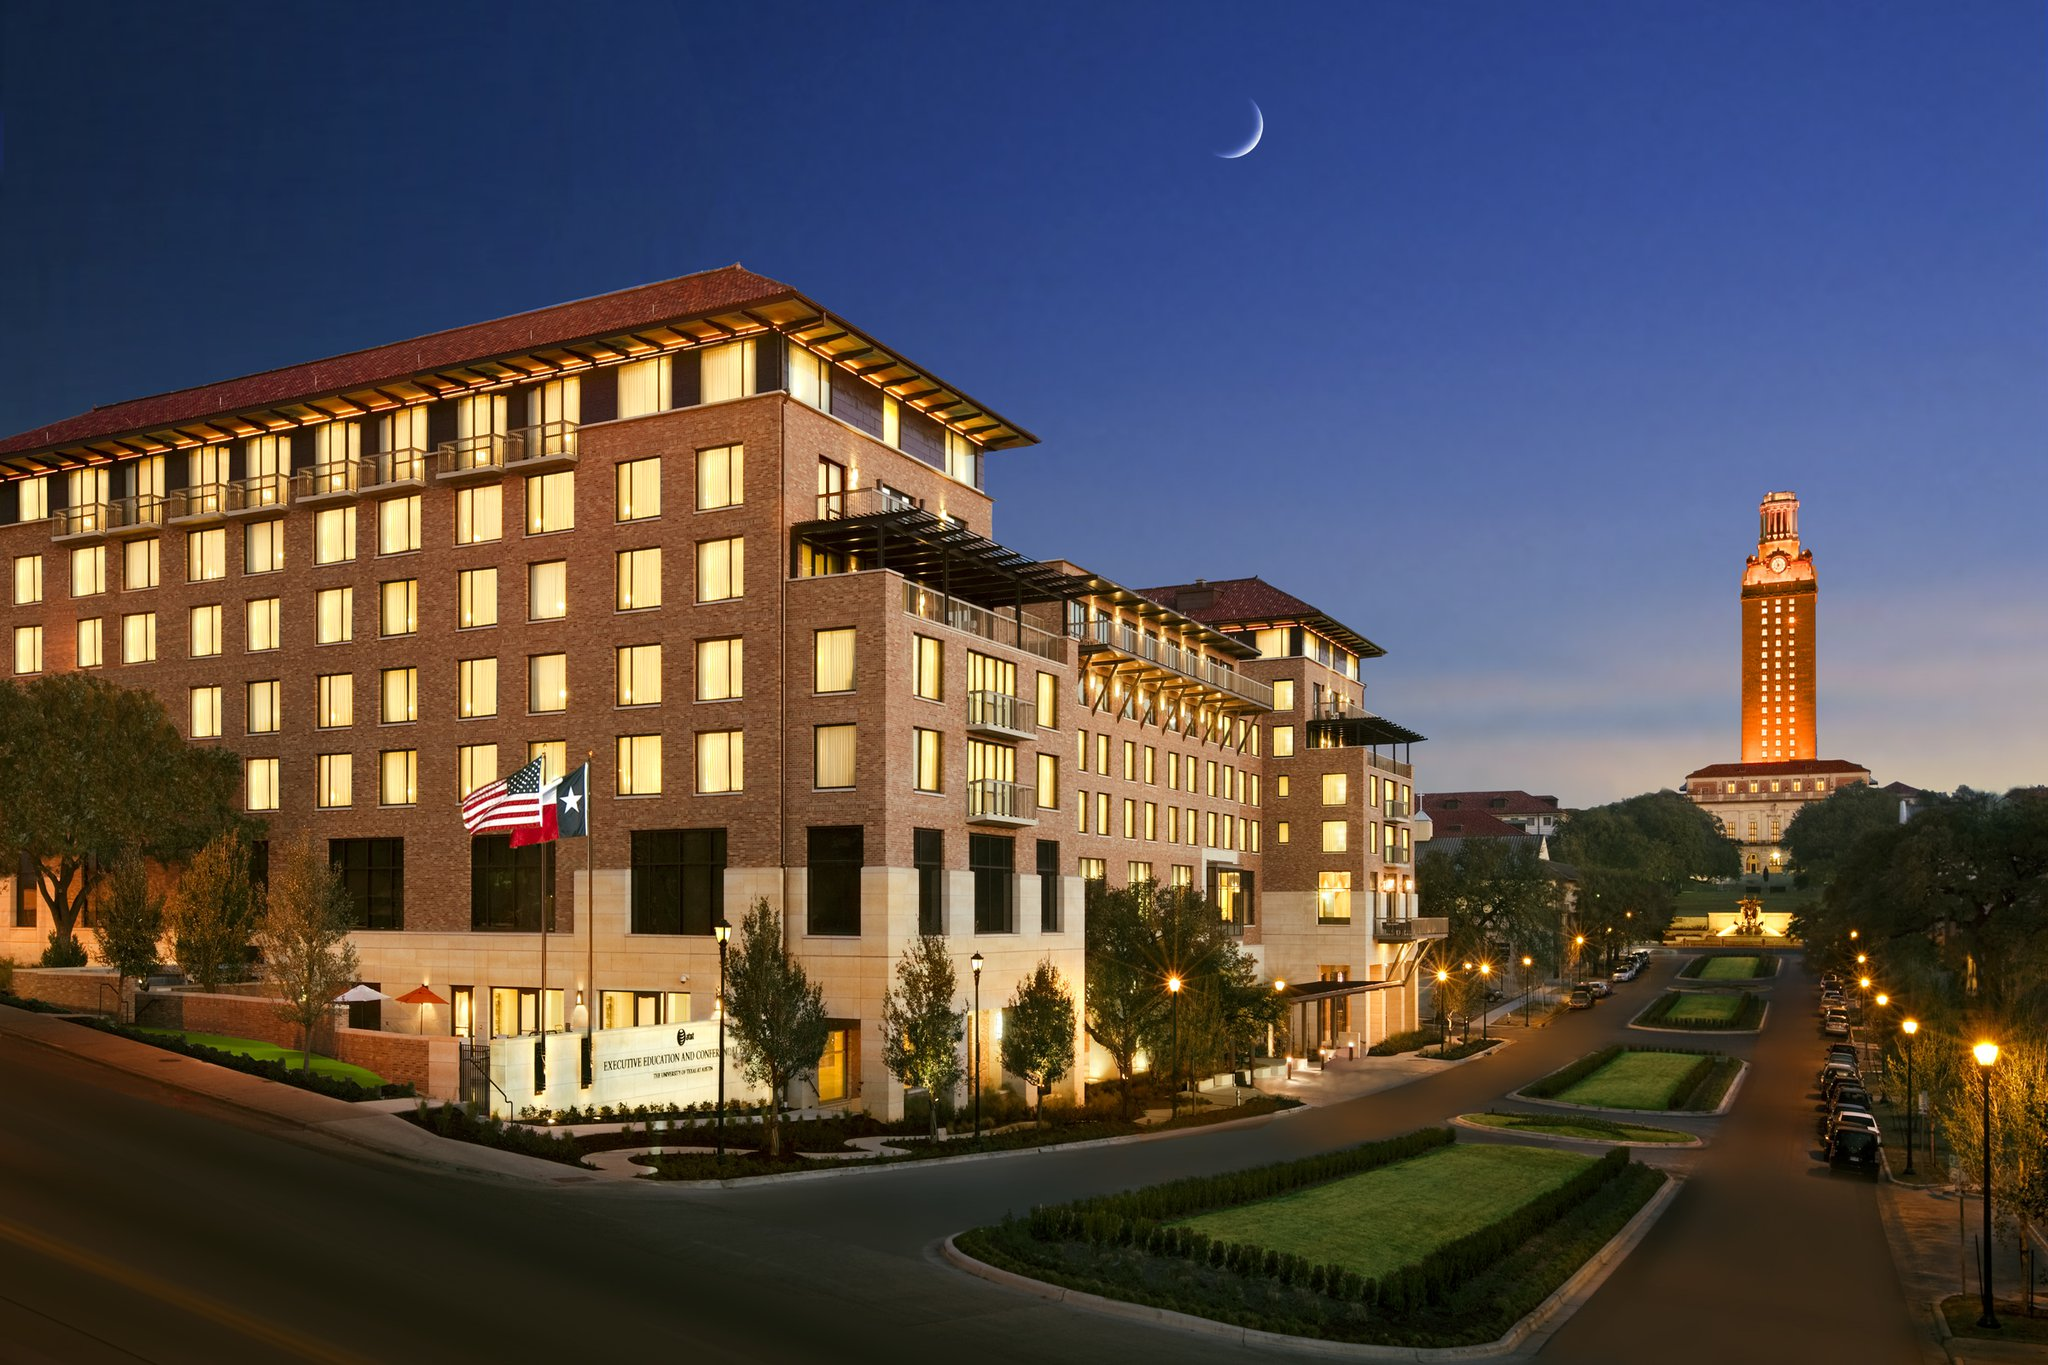 AT&T Hotel and Conference Center Accommodations, Venues